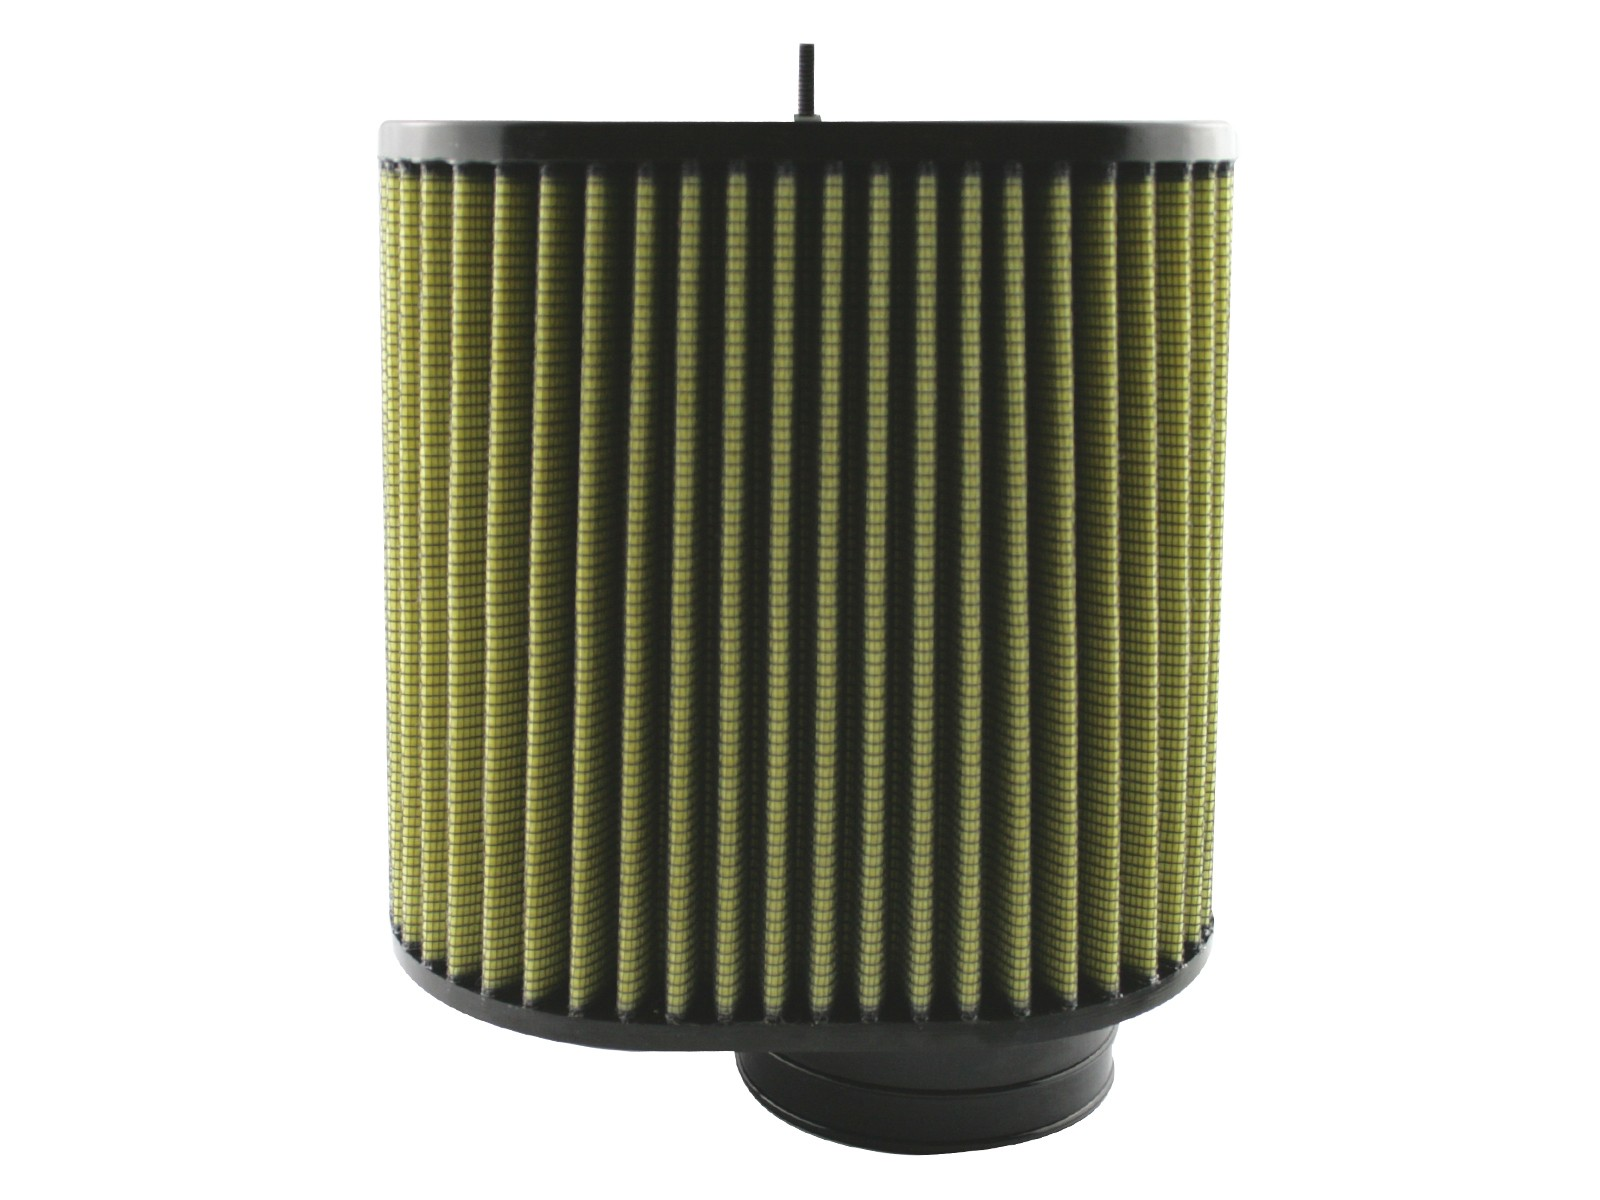 aFe POWER 72-90060 Magnum FLOW Pro GUARD7 Air Filter